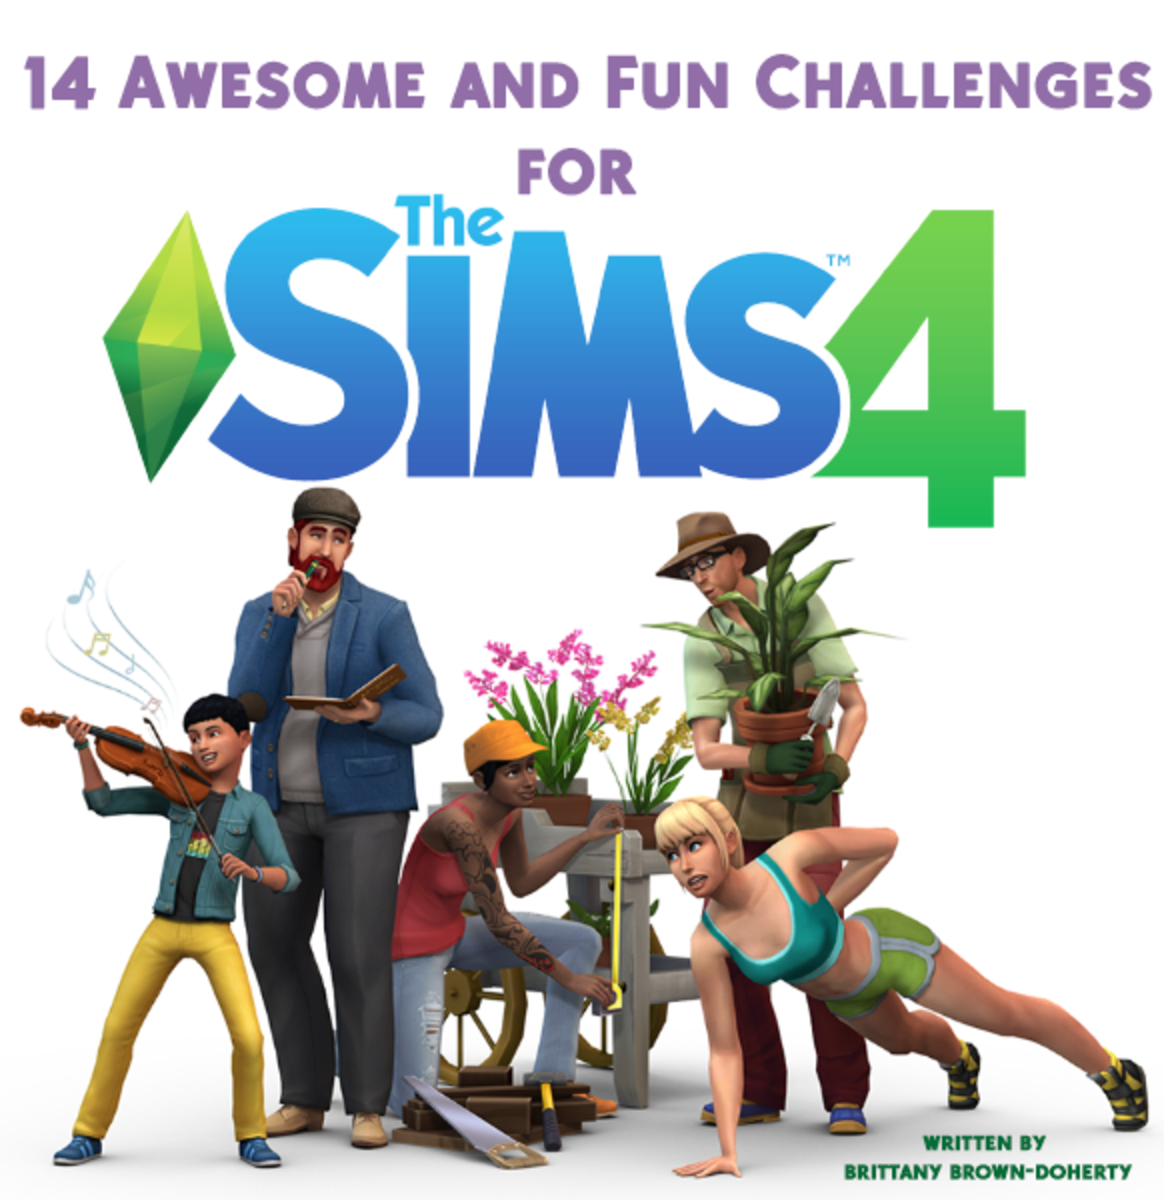 14 Awesome and Fun Challenges to Play in the Sims 4! | LevelSkip